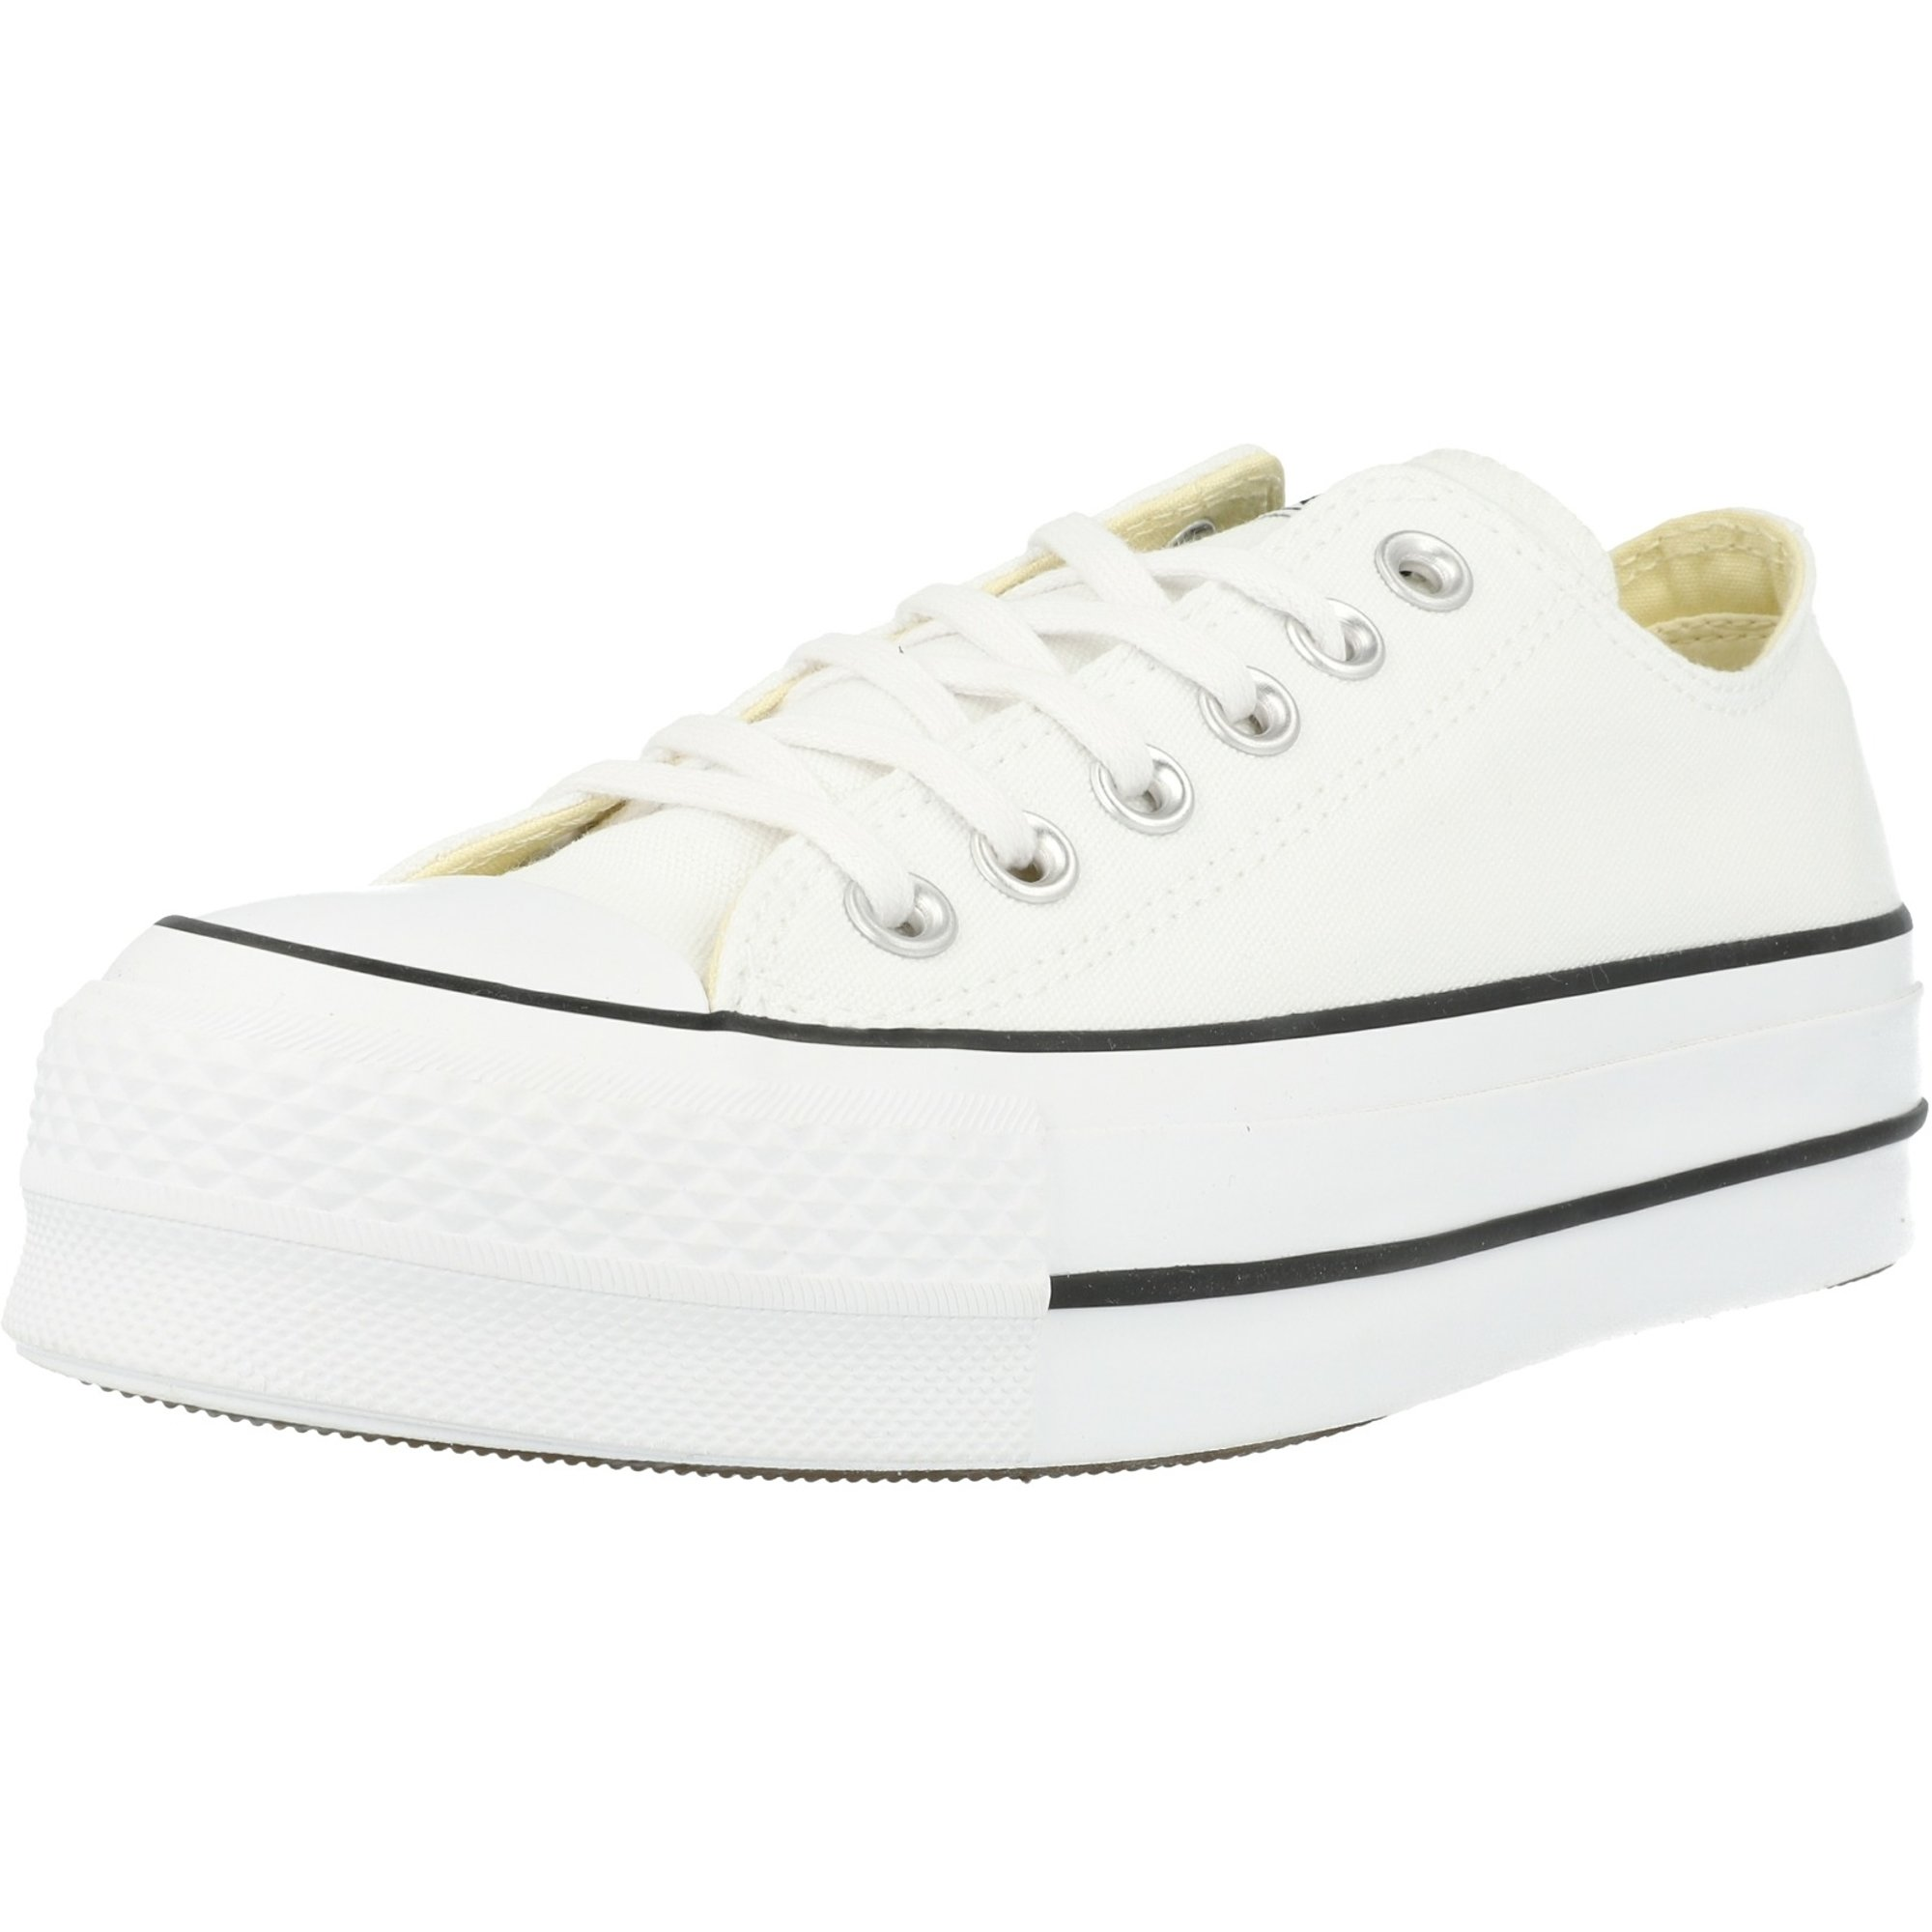 Converse Chuck Taylor All Star Lift Ox White/Black Canvas